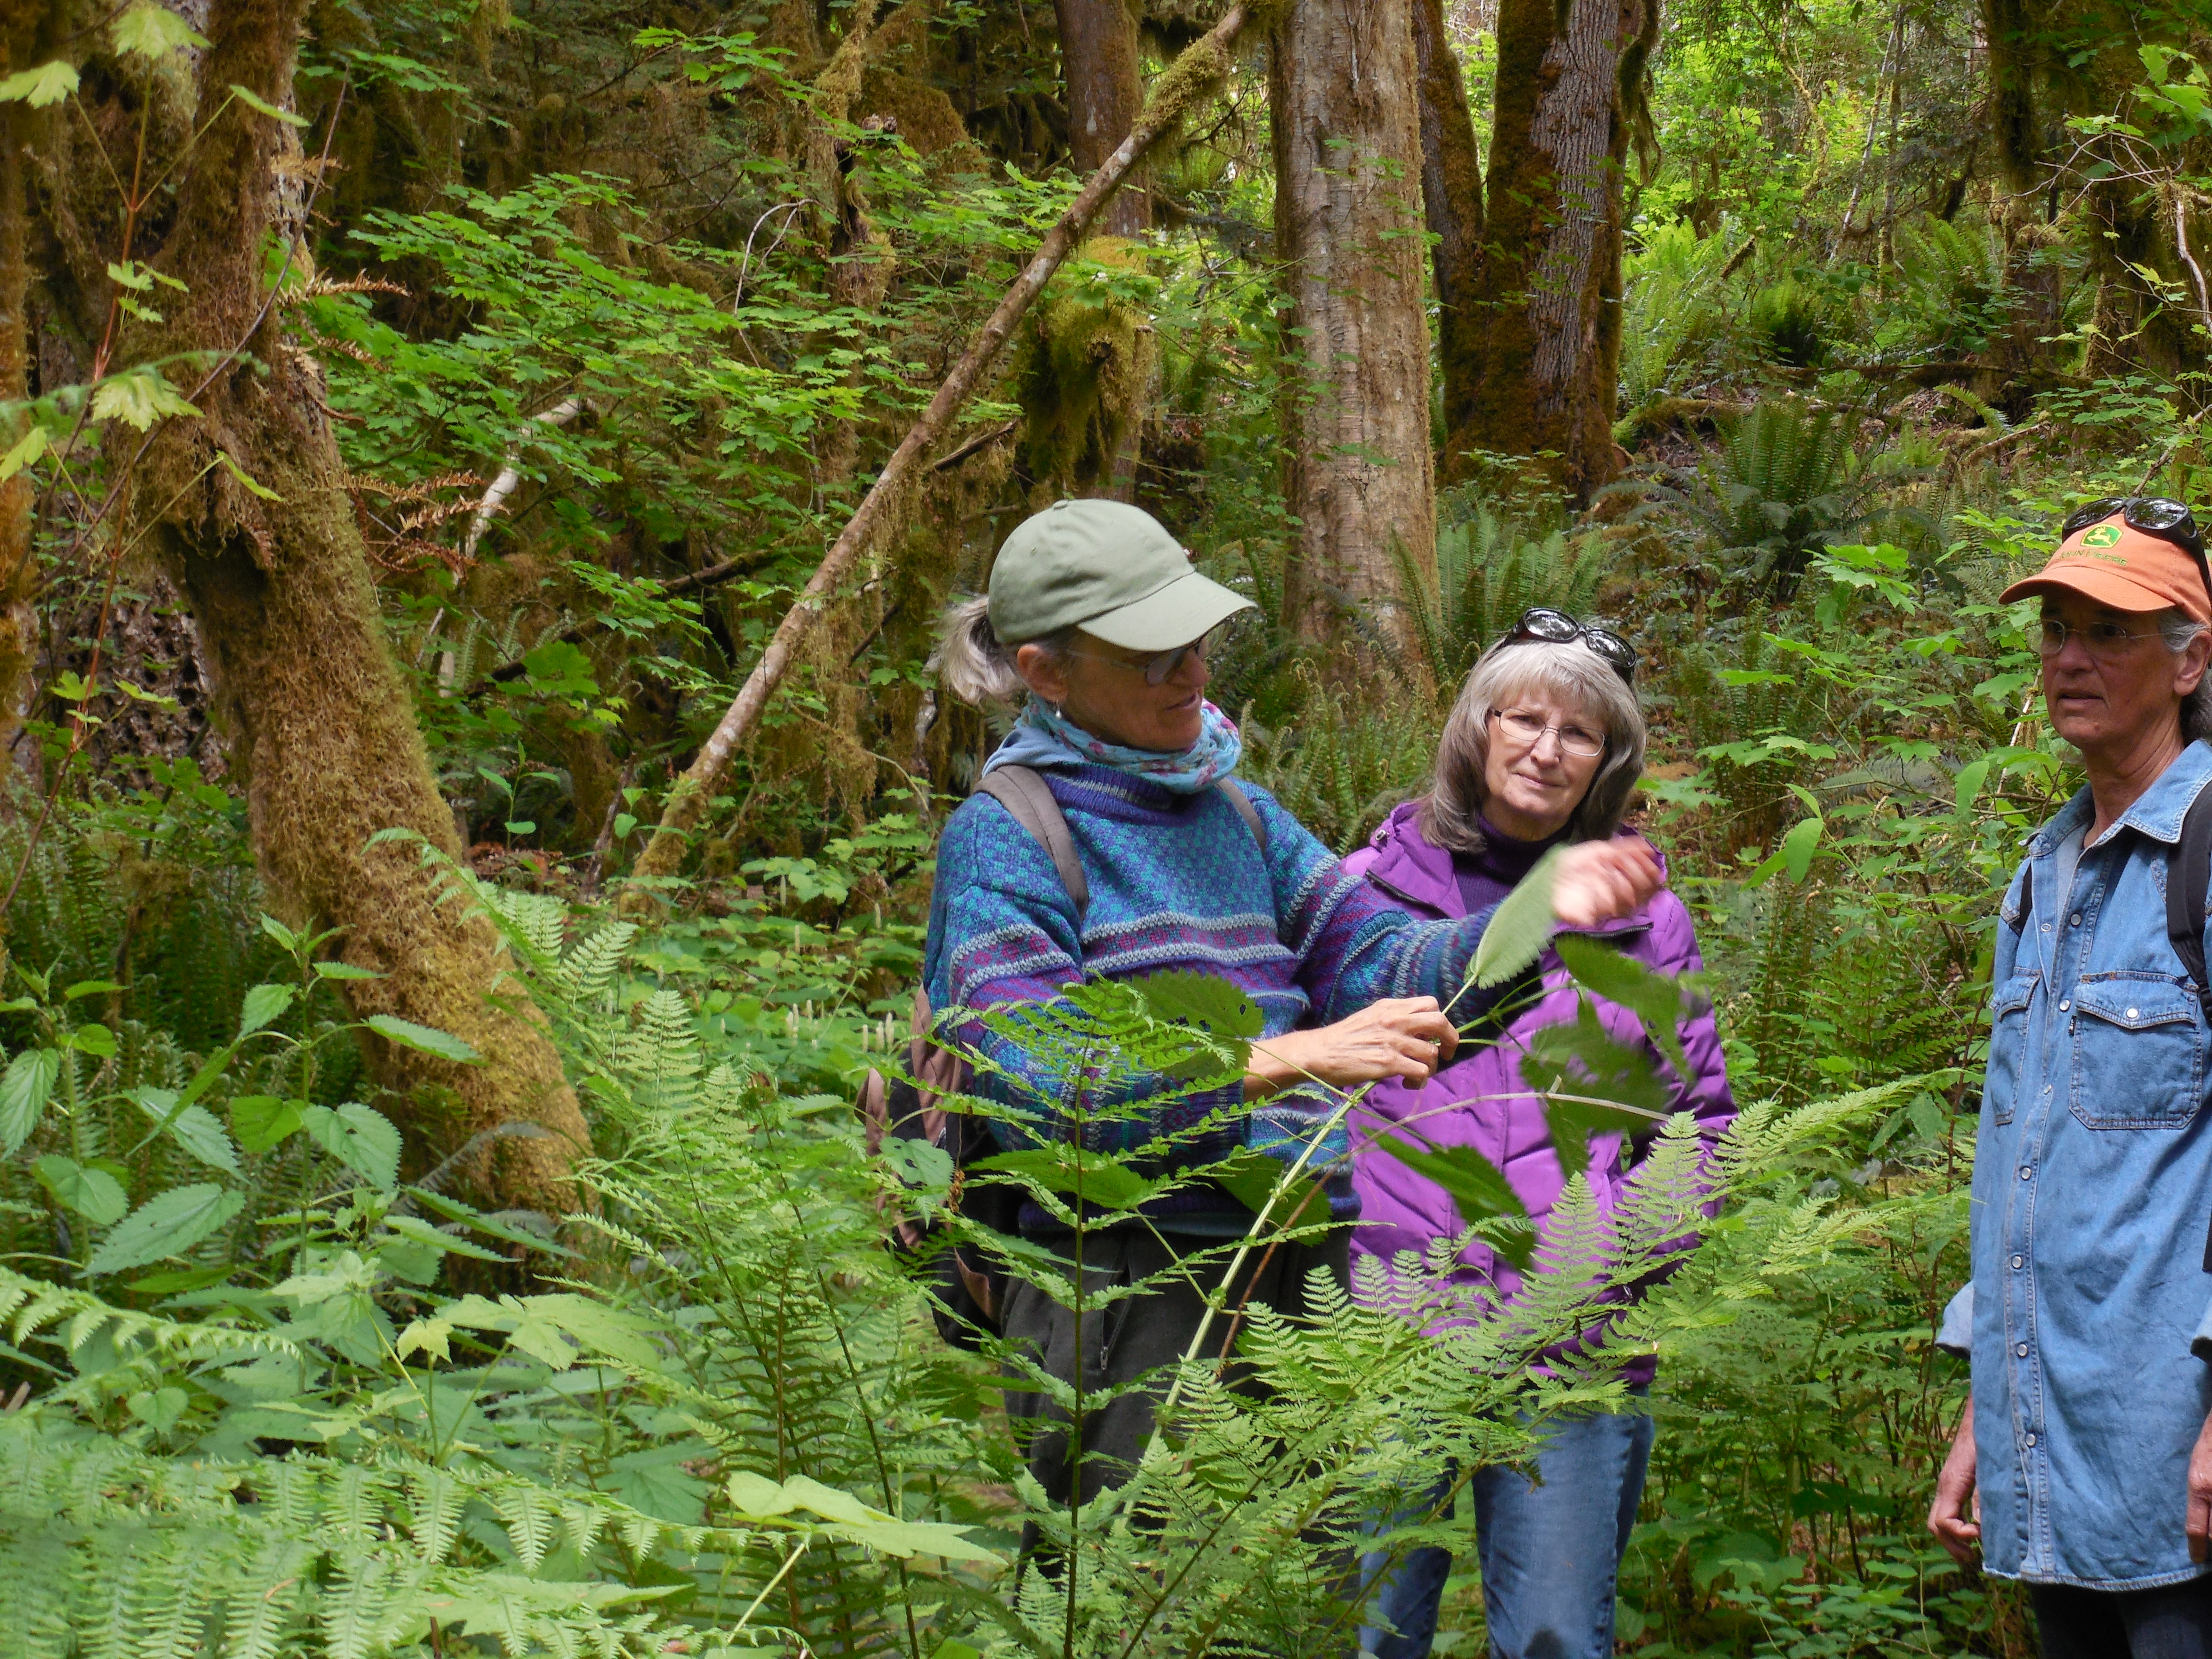 Native plant walk, May 2015. Photograph credit: Skagit Land Trust staff.